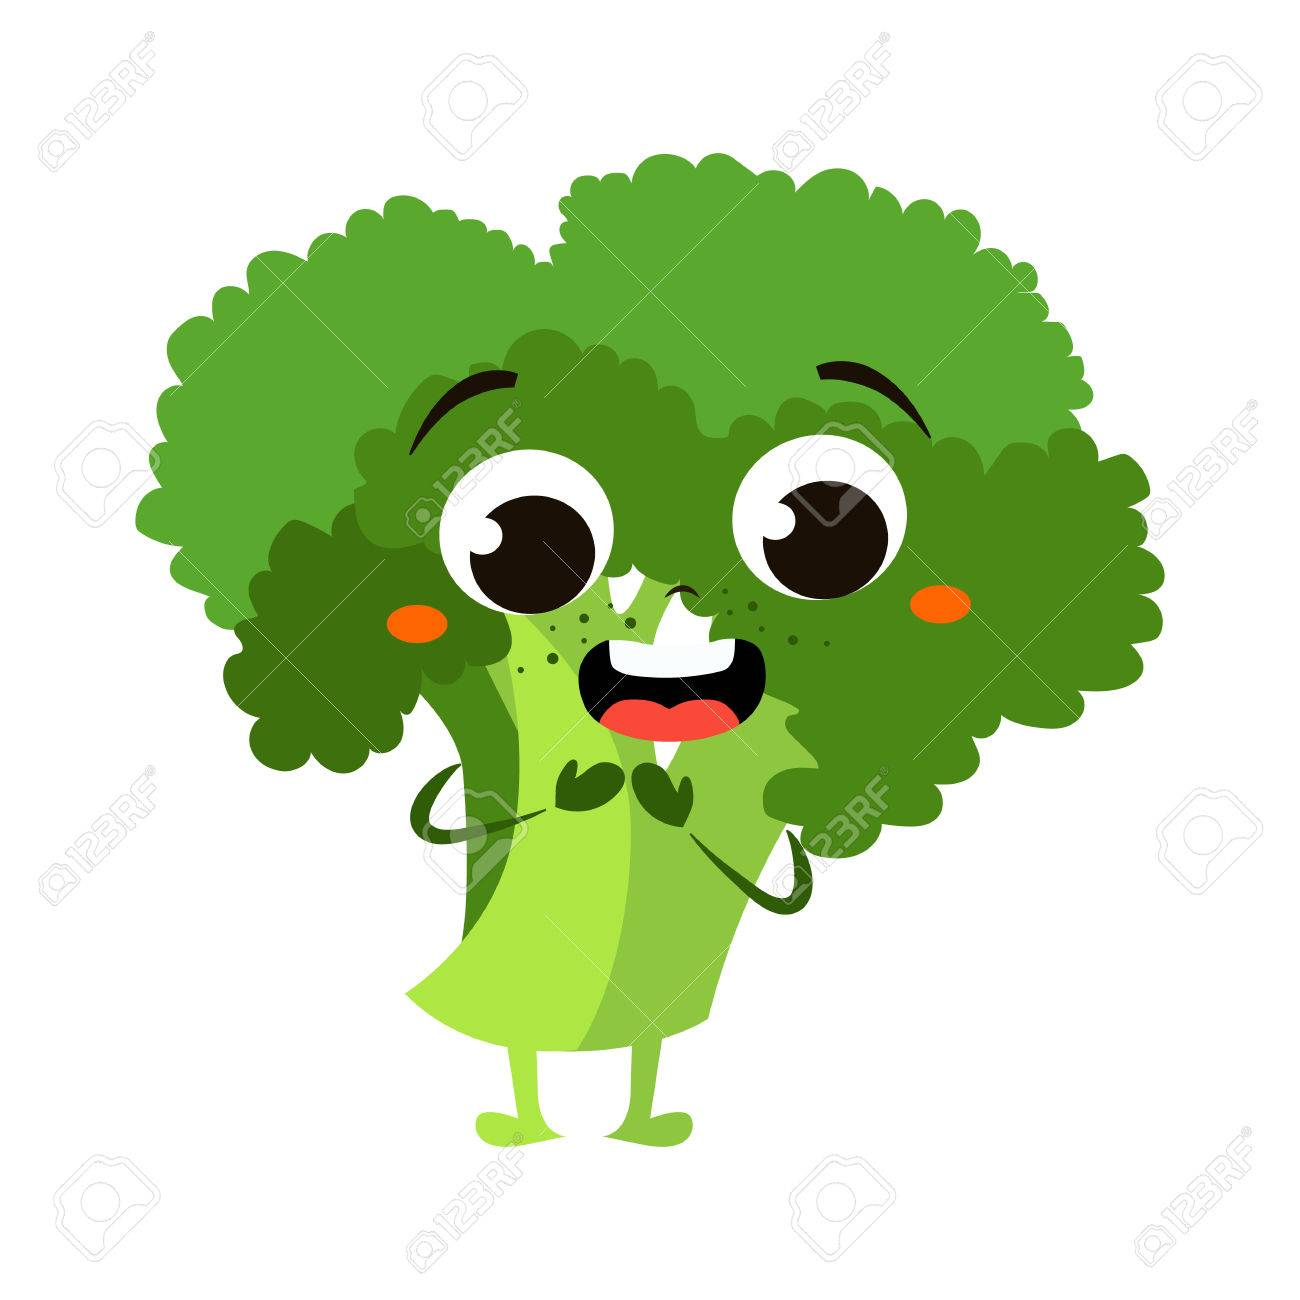 image black and white library Broccoli clipart face. At getdrawings com free